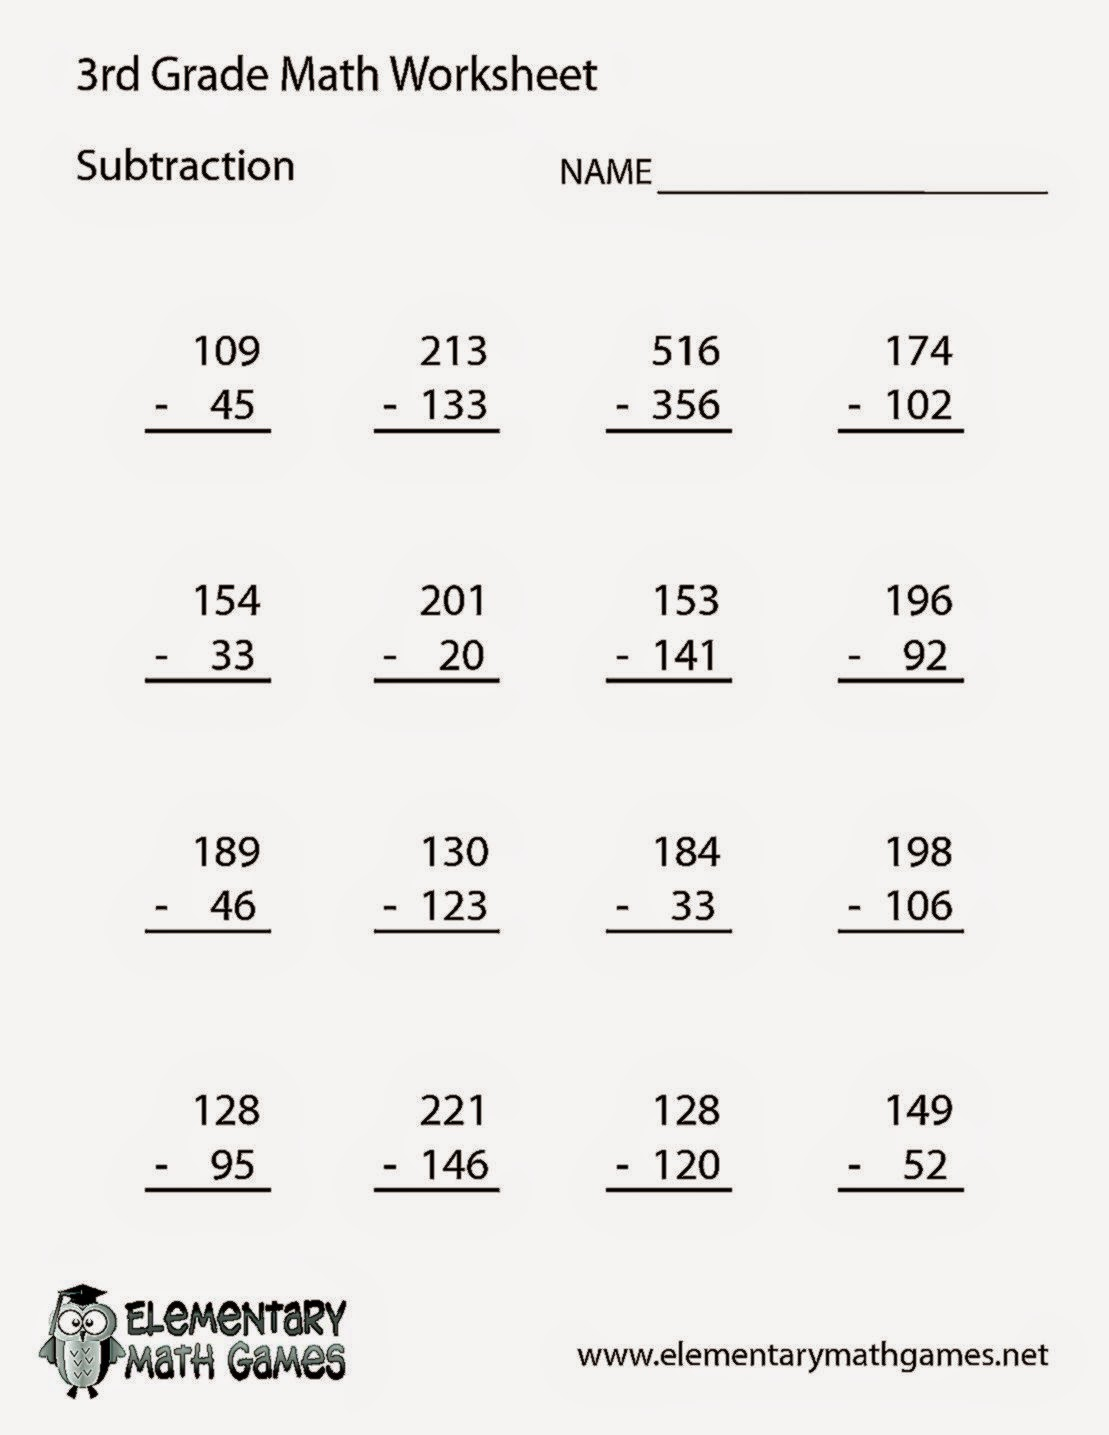 3rd grade math division printable worksheets